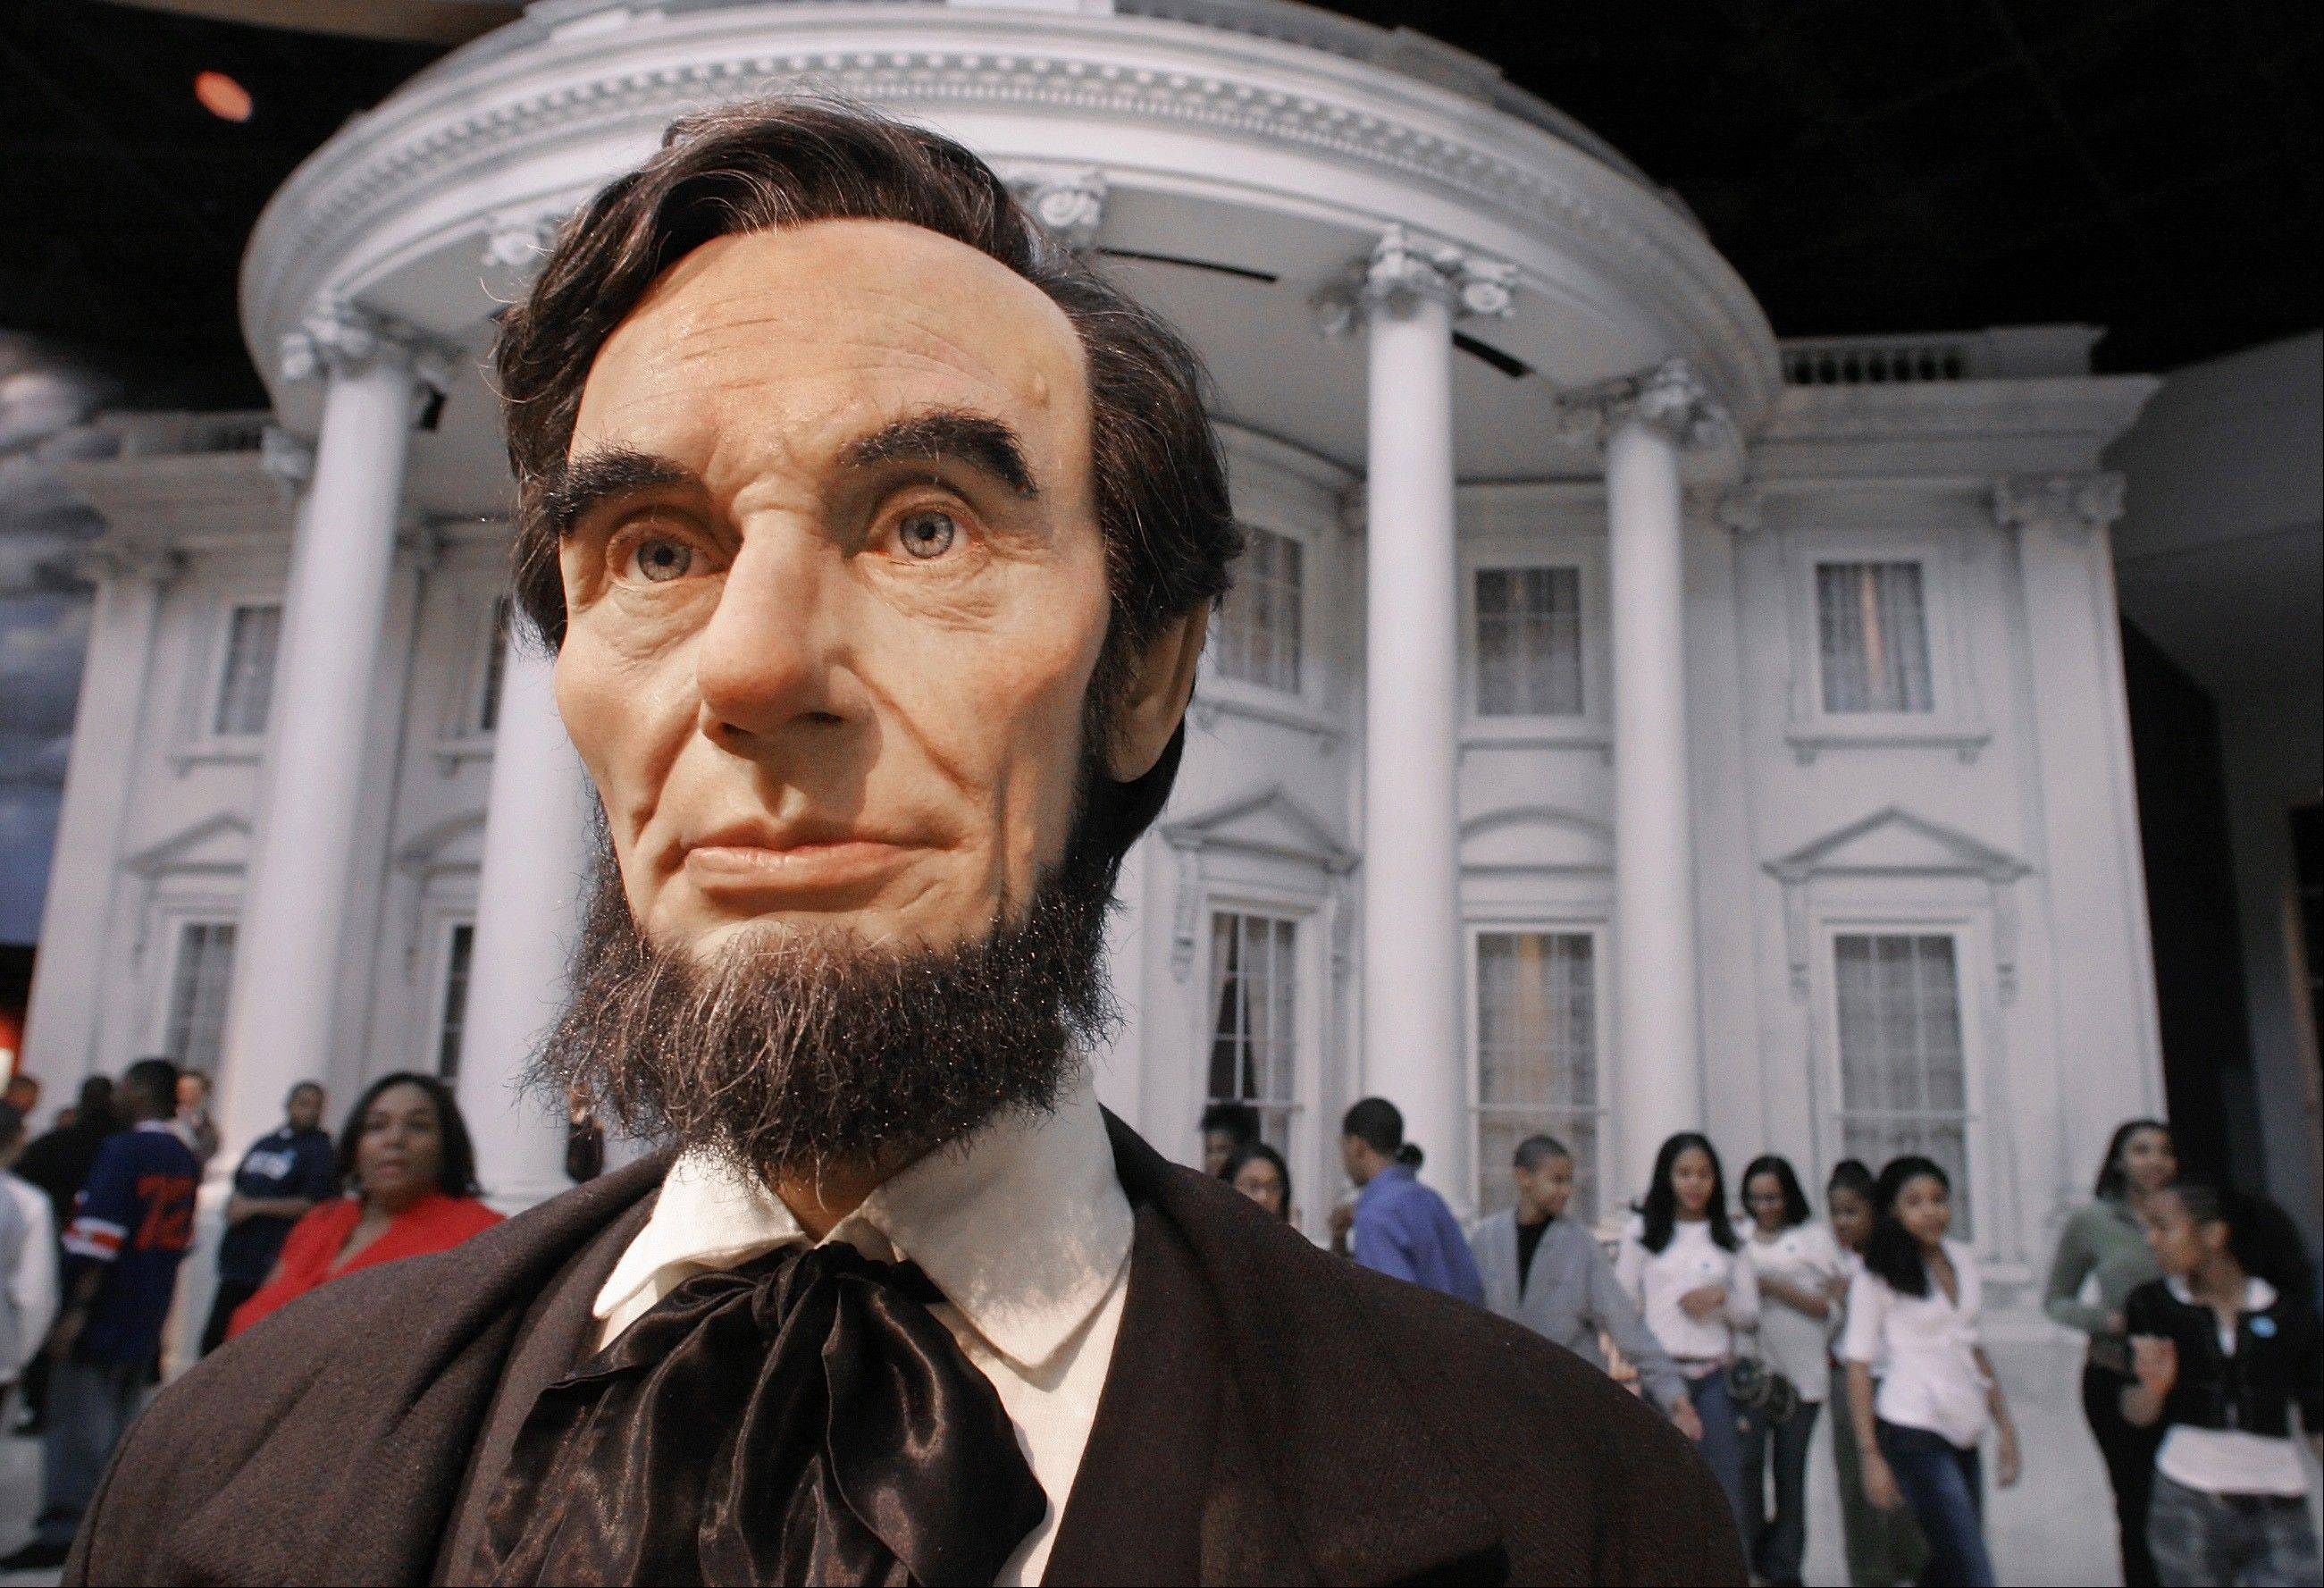 A replica of Abraham Lincoln in 1861, and the White House, is seen by visitors as they enter the Abraham Lincoln Presidential Museum in Springfield.